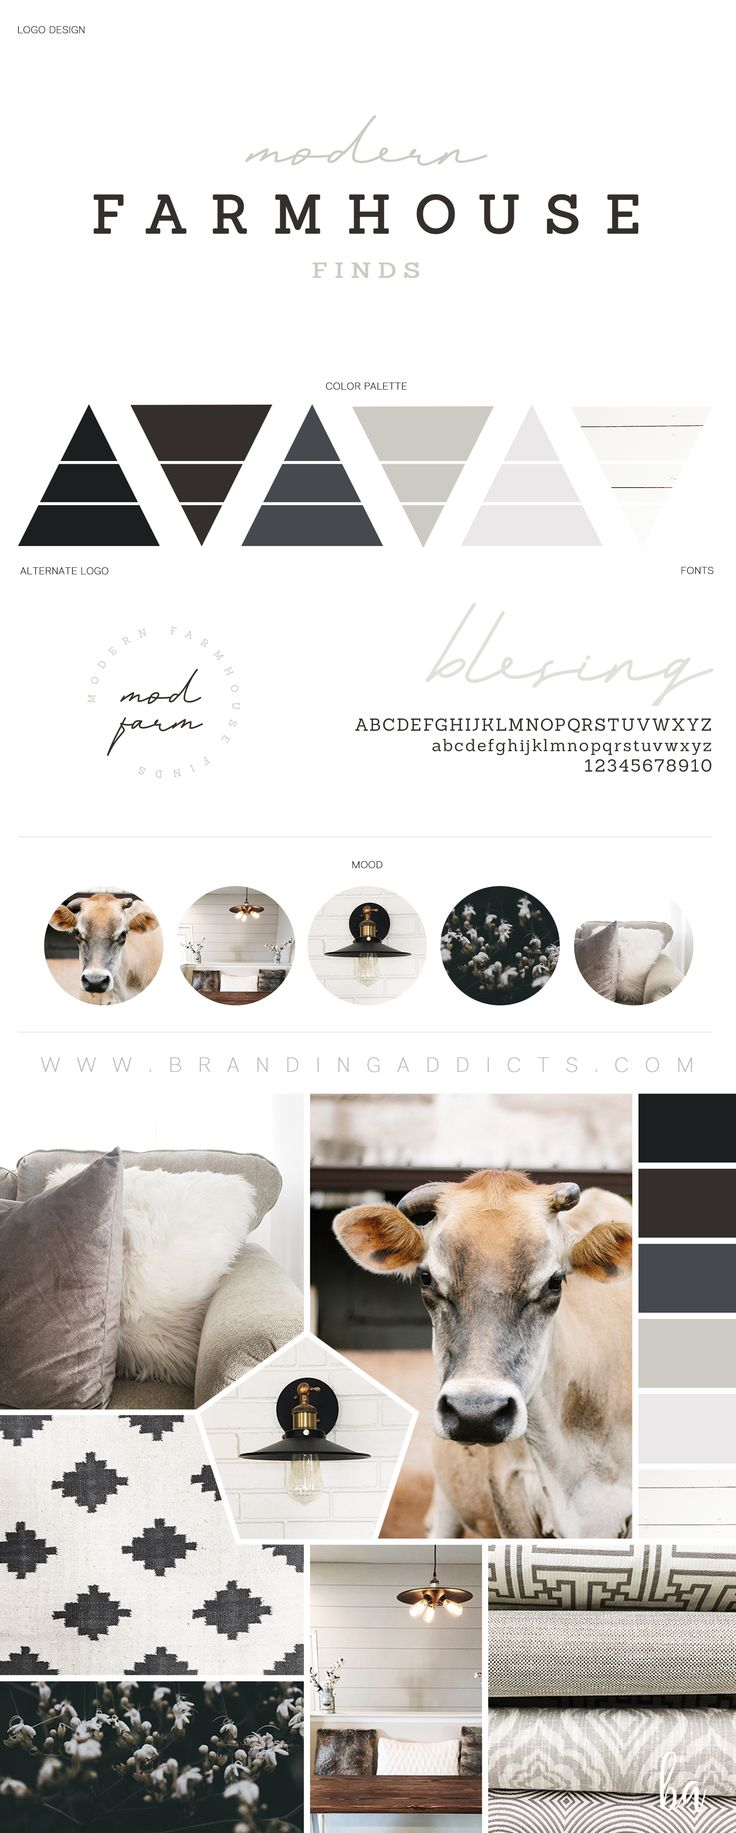 Fresh from the Design Studio. Modern Farmhouse style with a touch of Cozy Chic! Shiplap, neutrals, farm house feel with a brown, grey, and blue hue mixture. Softened with a light script, this brand is the perfect balance between modern and rustic. Follow Modern Farmhouse Finds on Instagram and Facebook for decor inspiration. Professional Business Branding by Designer Laine Napoli. Web Design, Logo, Mood Board, Brand Boards, and more.